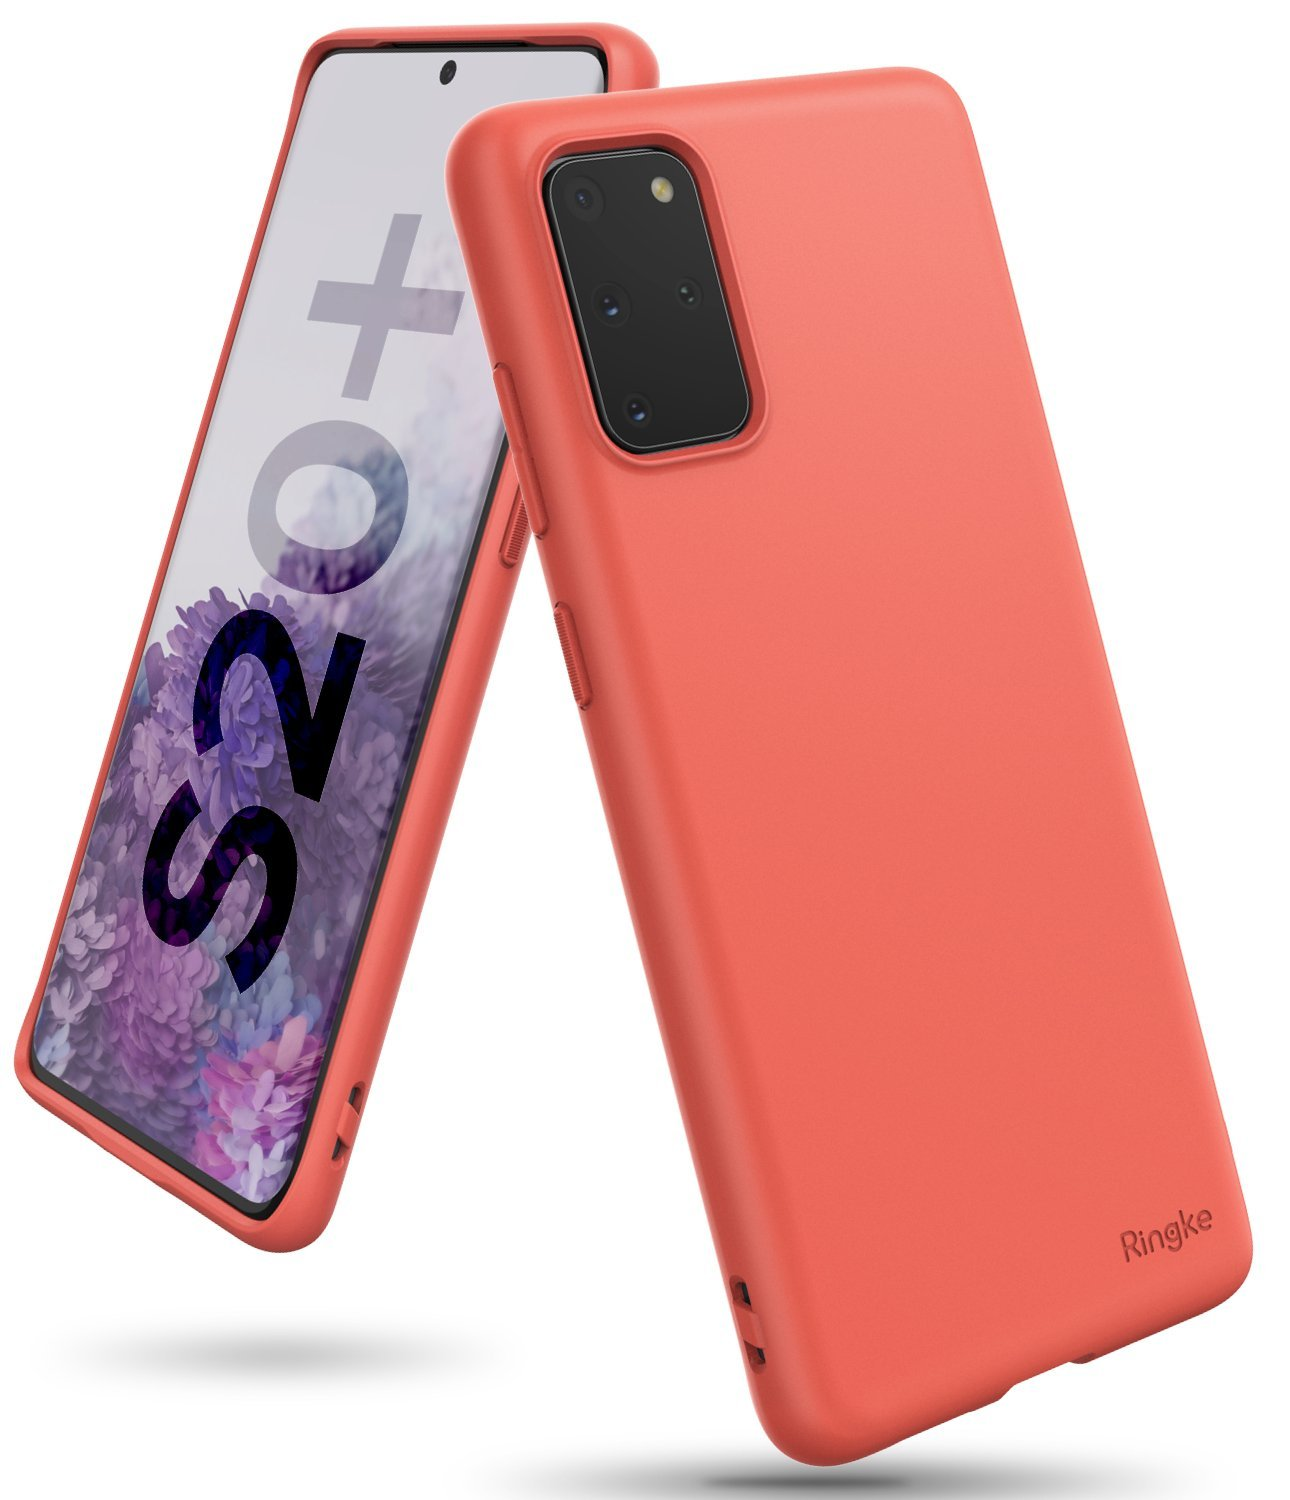 Galaxy S20 plus Case ringke Air-S, coral, main image